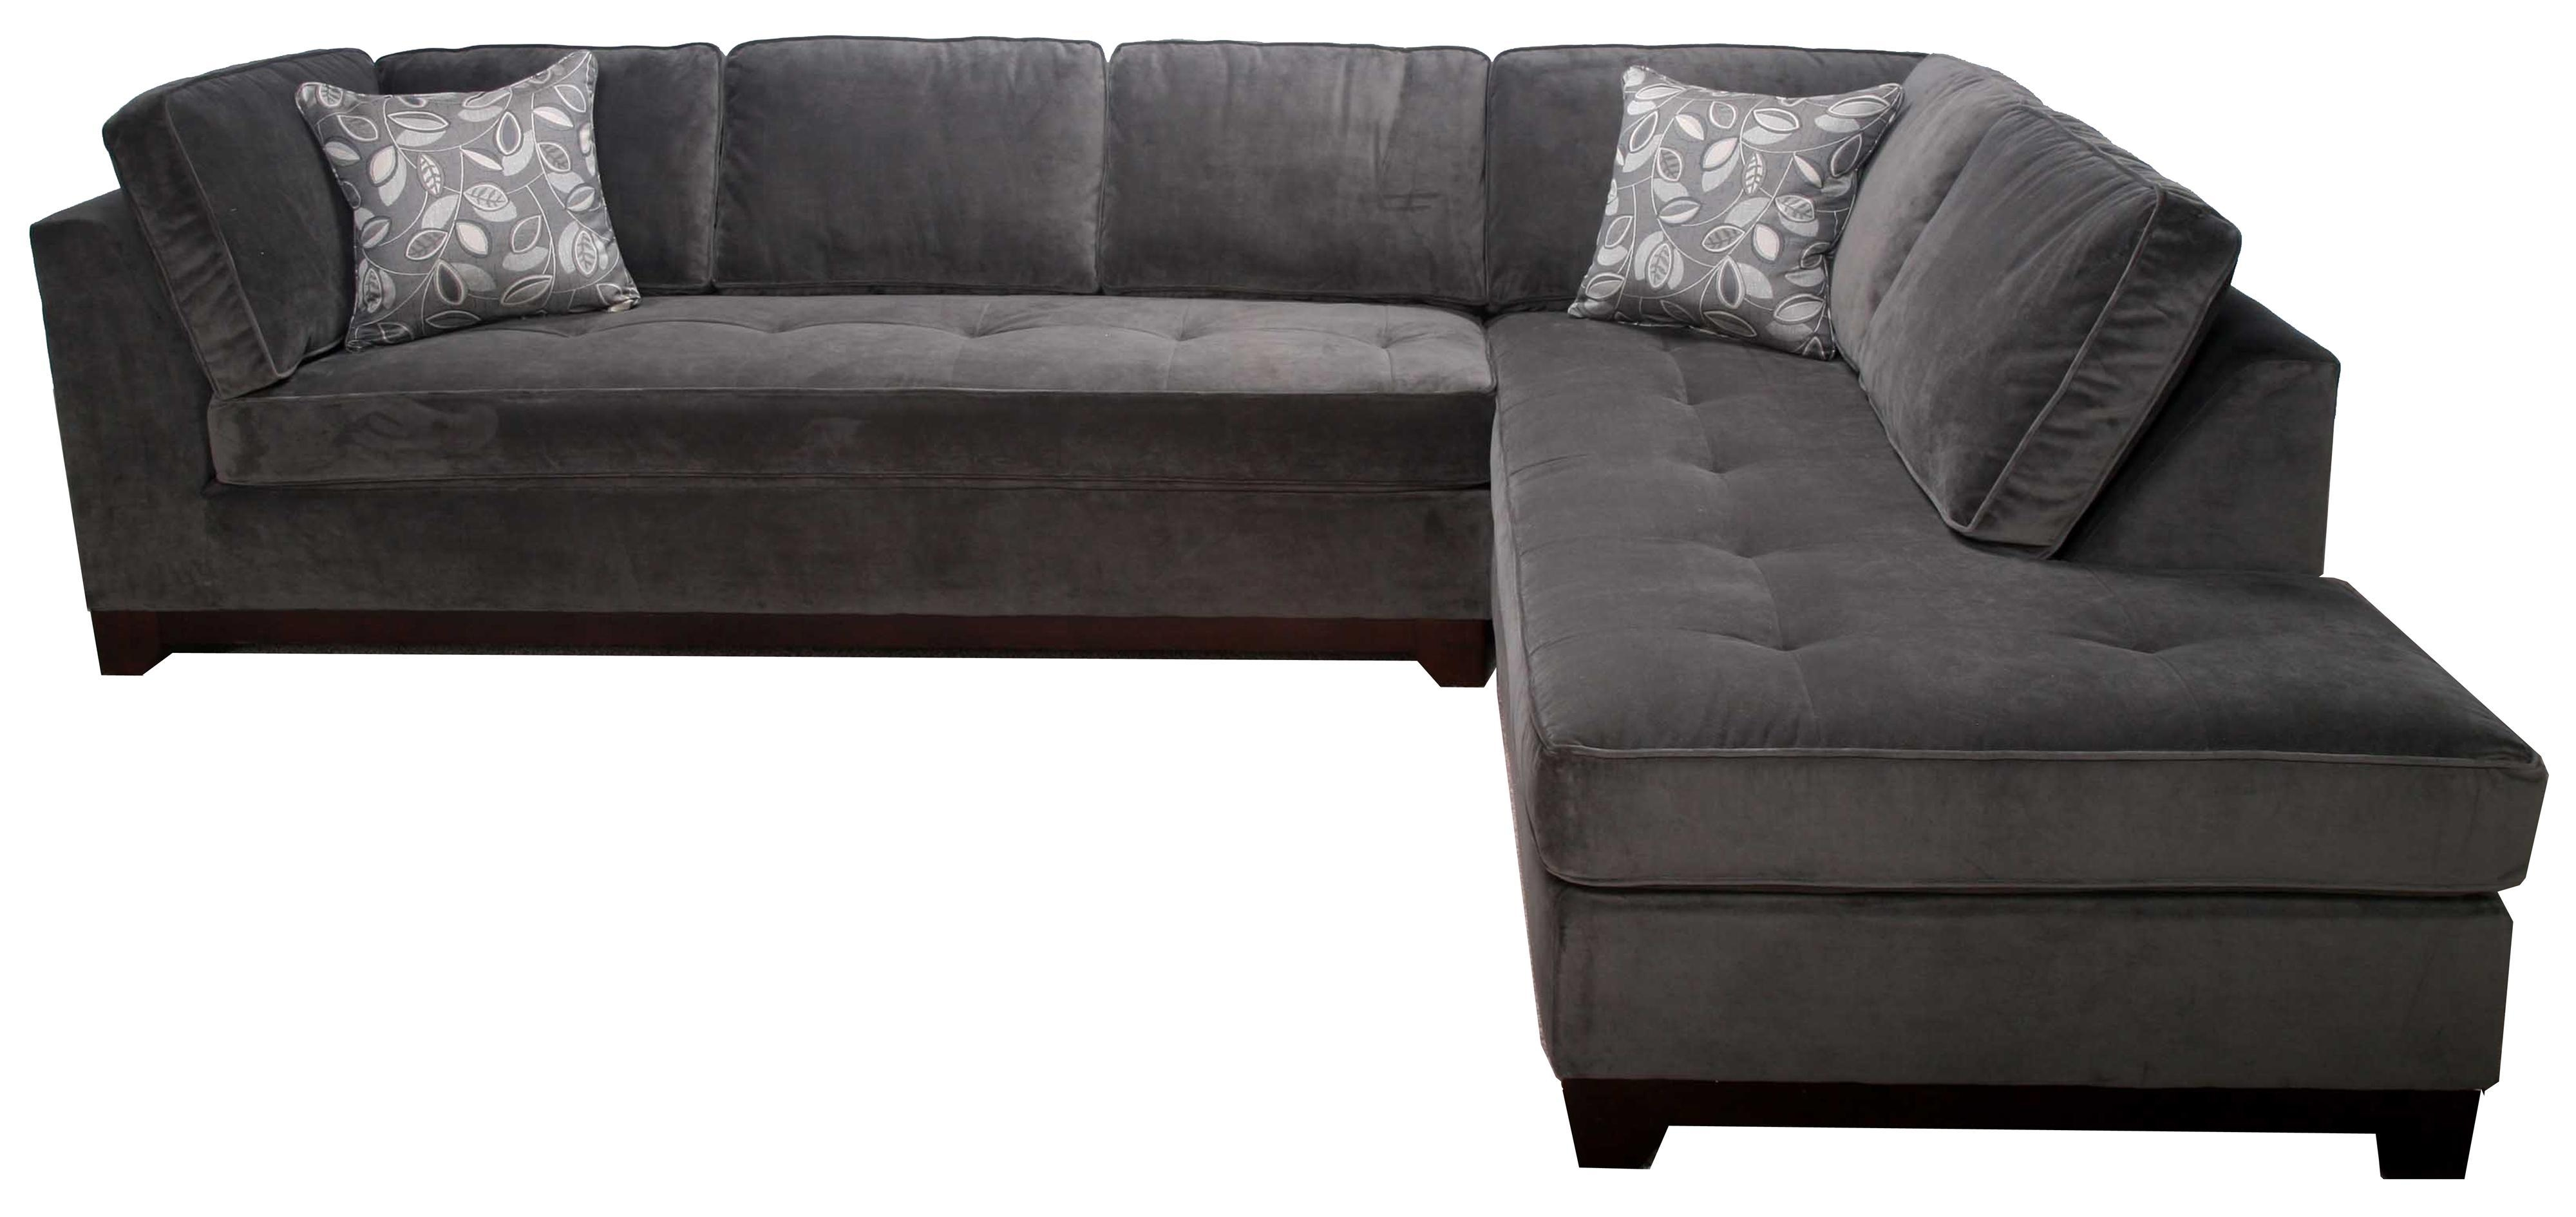 Bauhaus 536A Contemporary 2 Piece Sectional With Chaise – Ahfa Within Bauhaus Sectional (View 1 of 15)